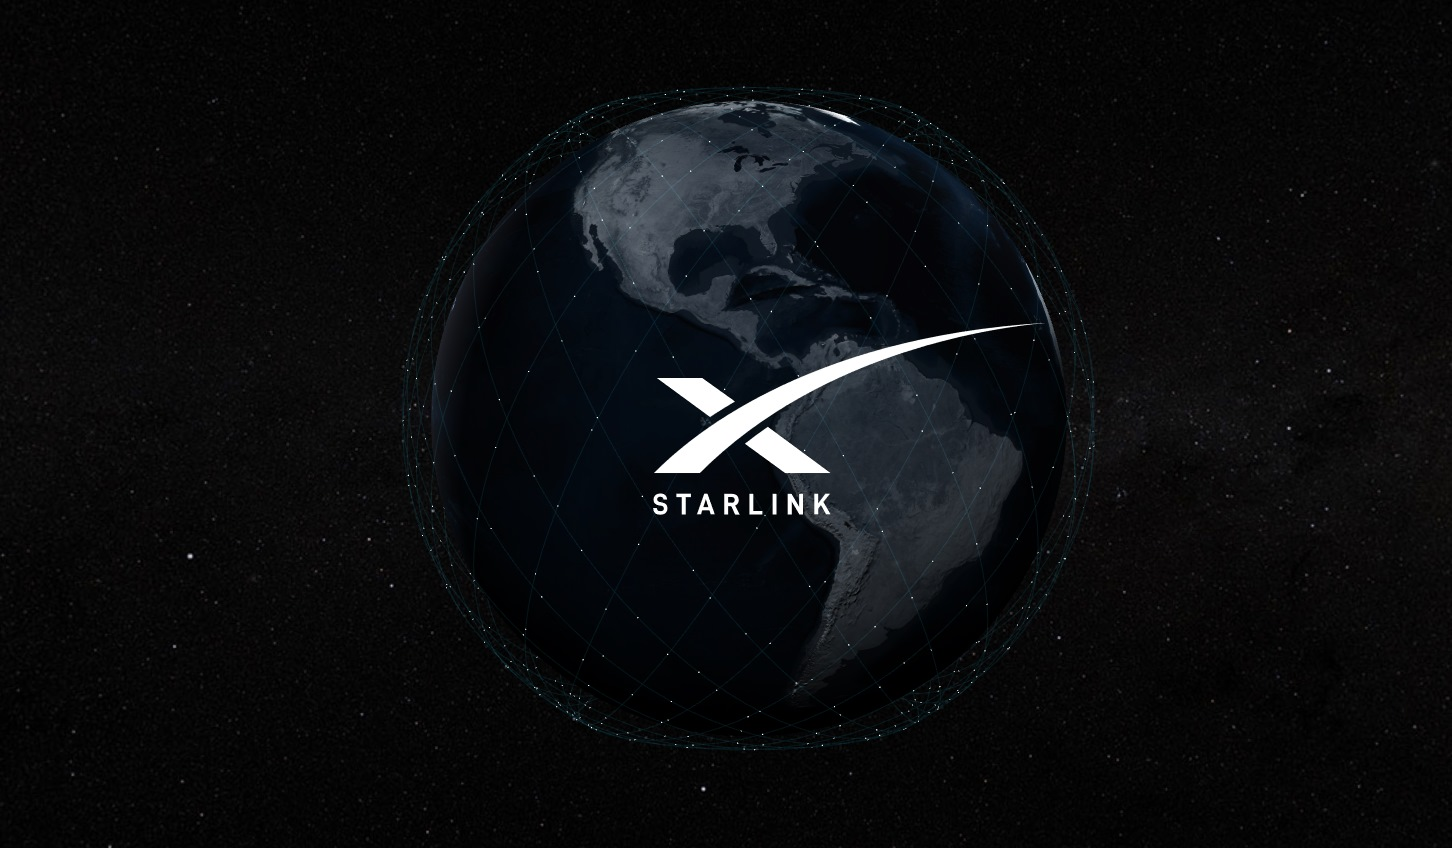 SpaceX reveals more Starlink info after launch of first 60